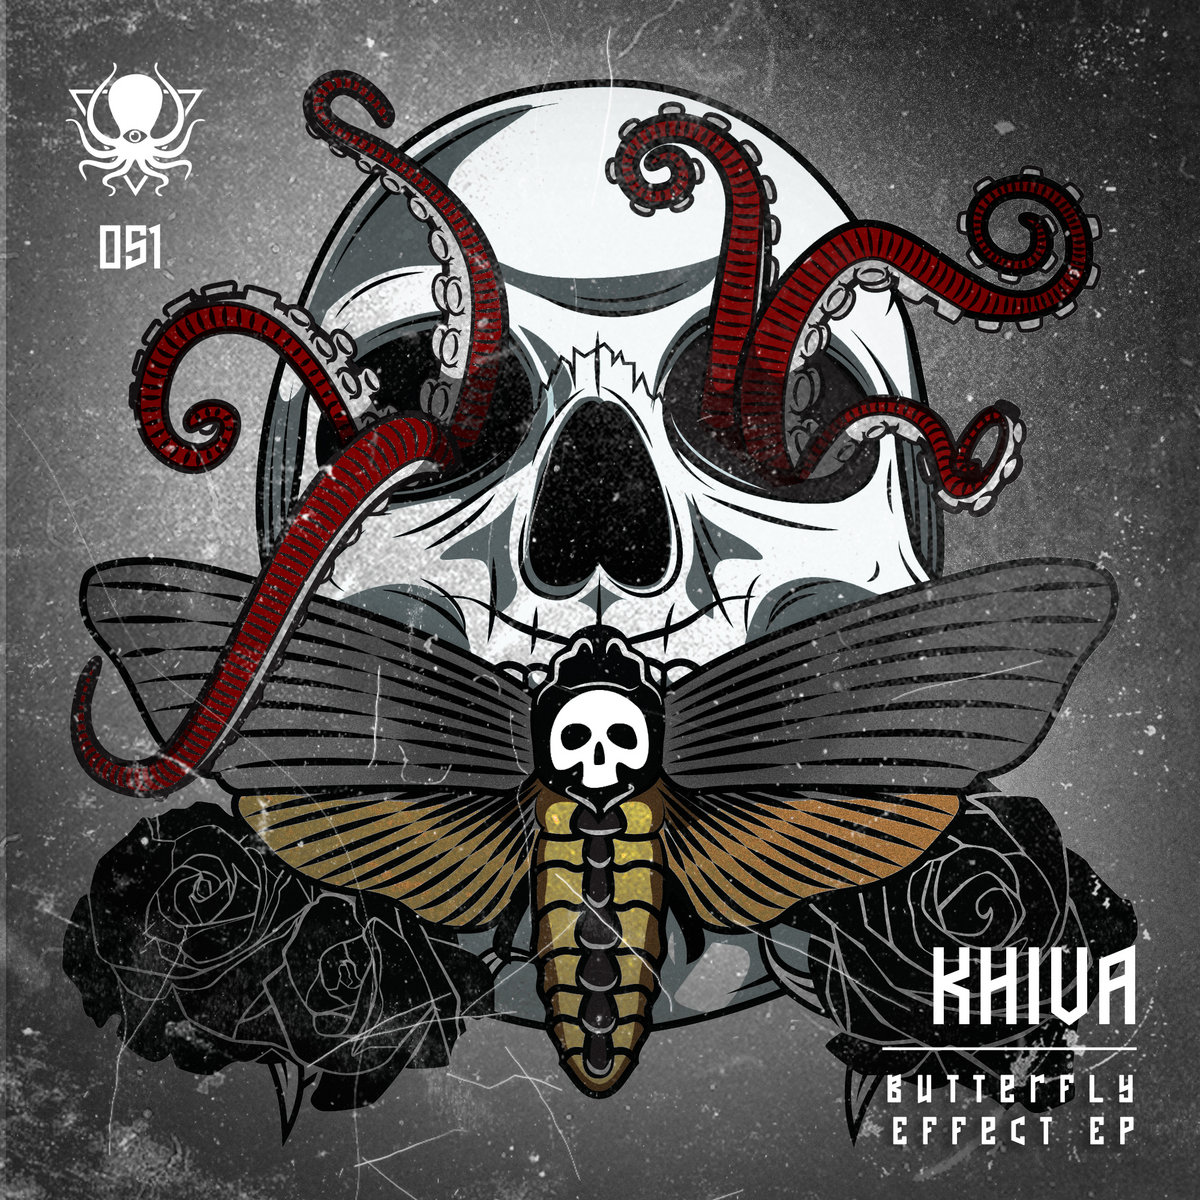 Khiva - Butterfly Effect EP (DDD051) | Deep Dark & Dangerous